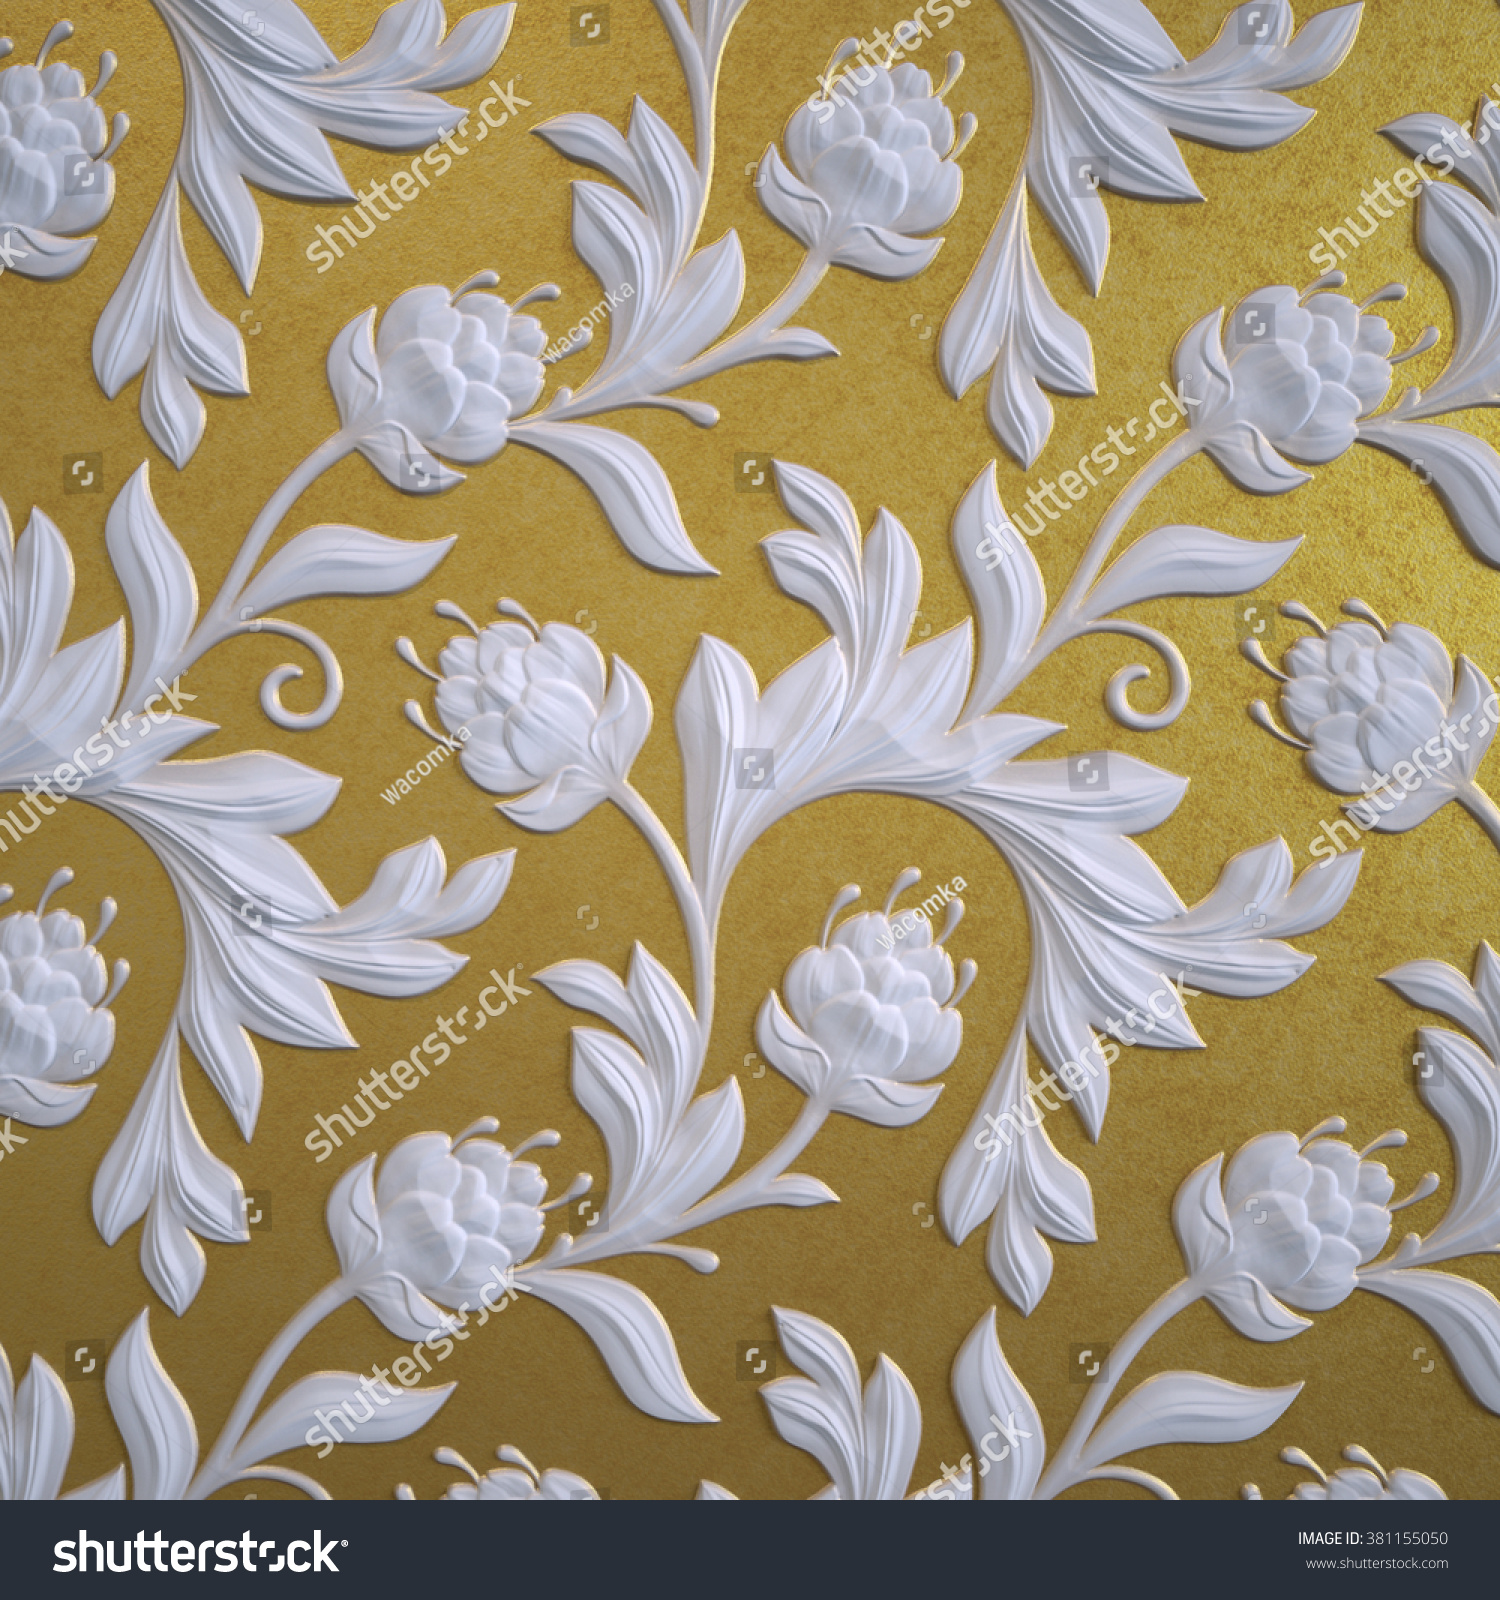 white and gold floral wallpaper - photo #12